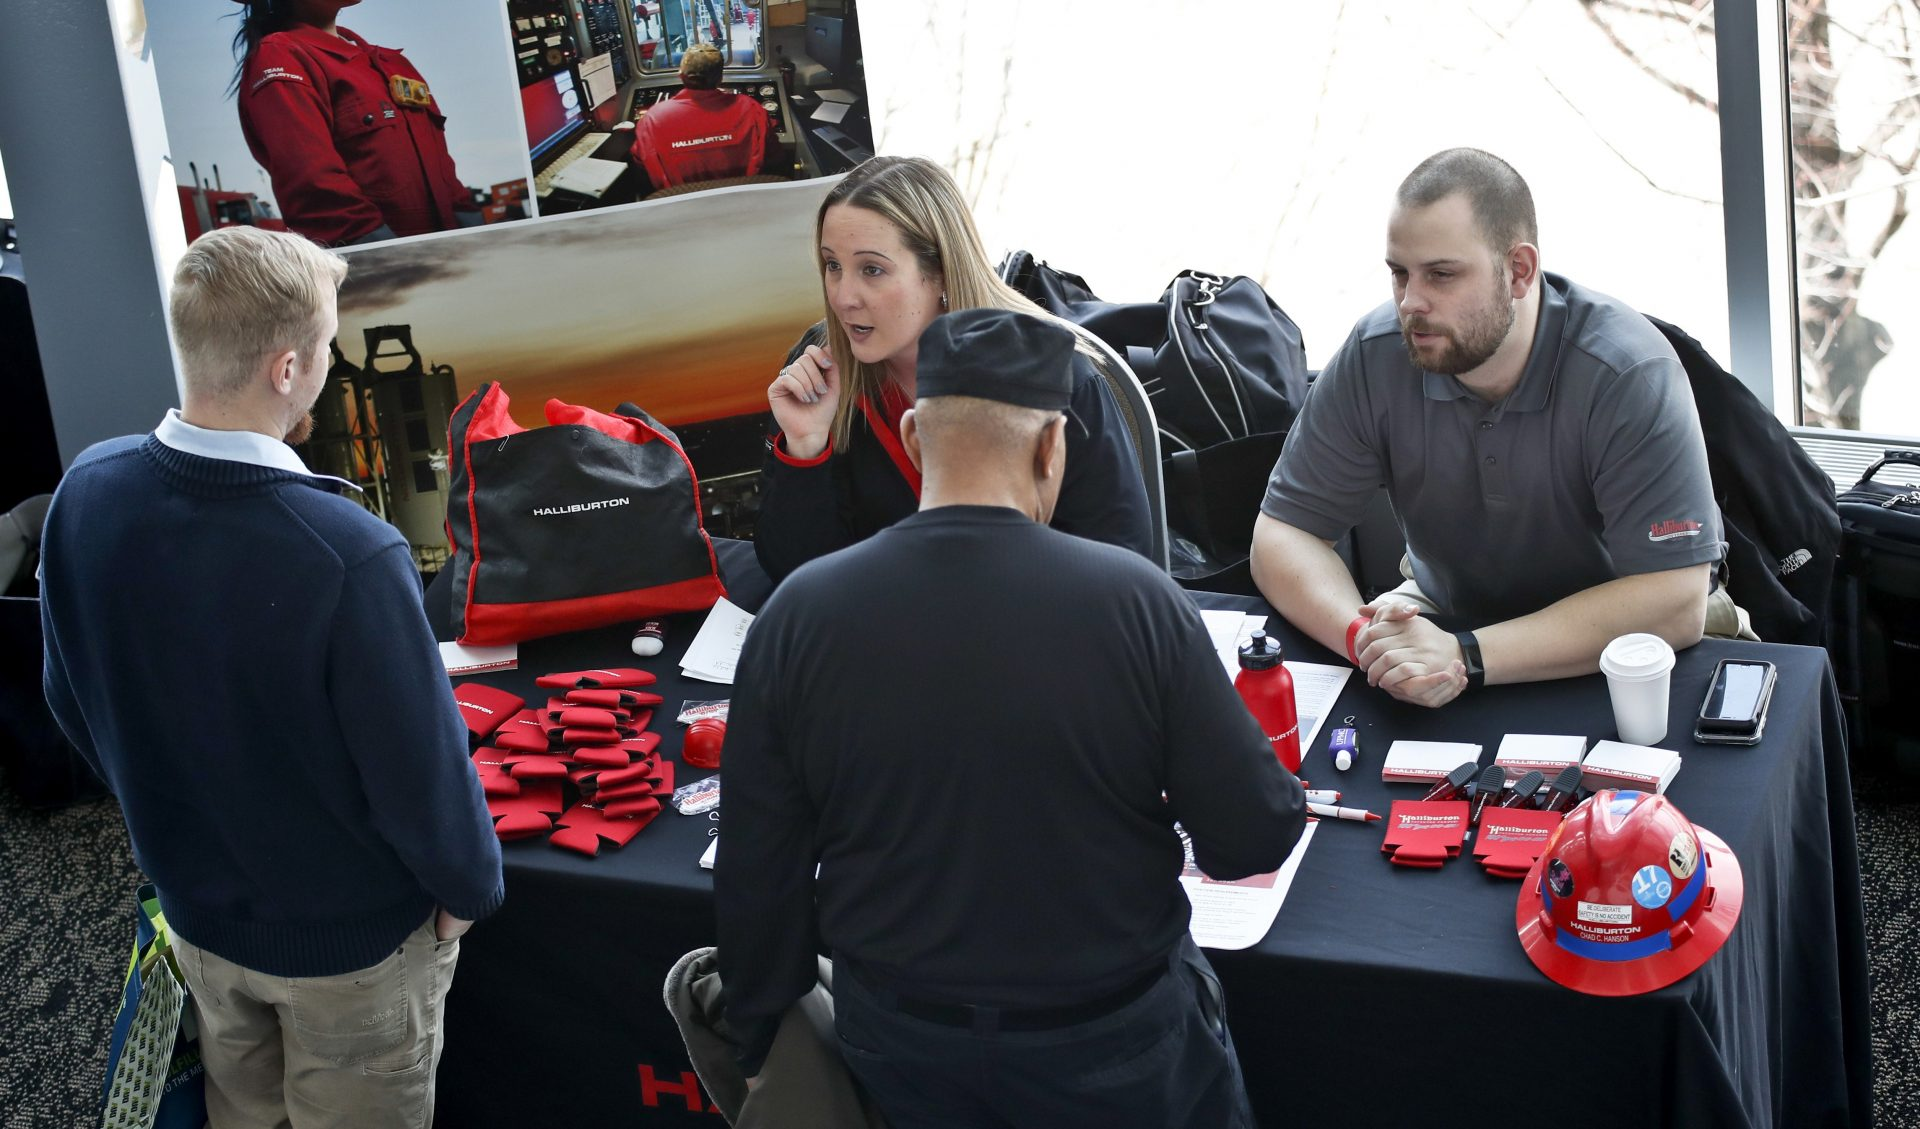 In this March 7, 2019, file photo, visitors to the Pittsburgh veterans job fair meet with recruiters at Heinz Field in Pittsburgh.